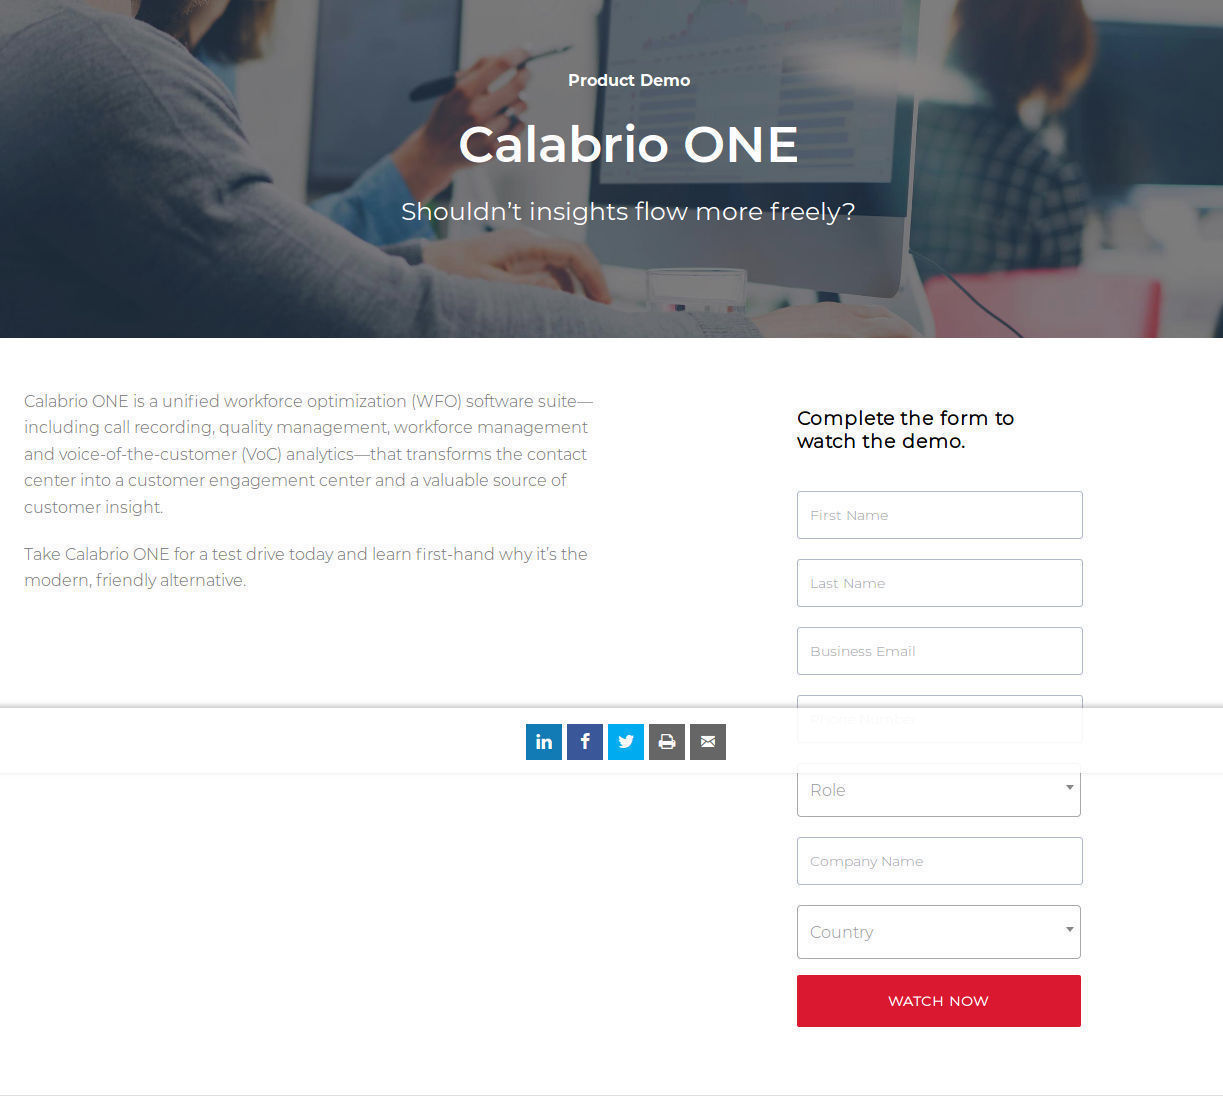 Calabrio One Pricing, Reviews and Features (September 2019